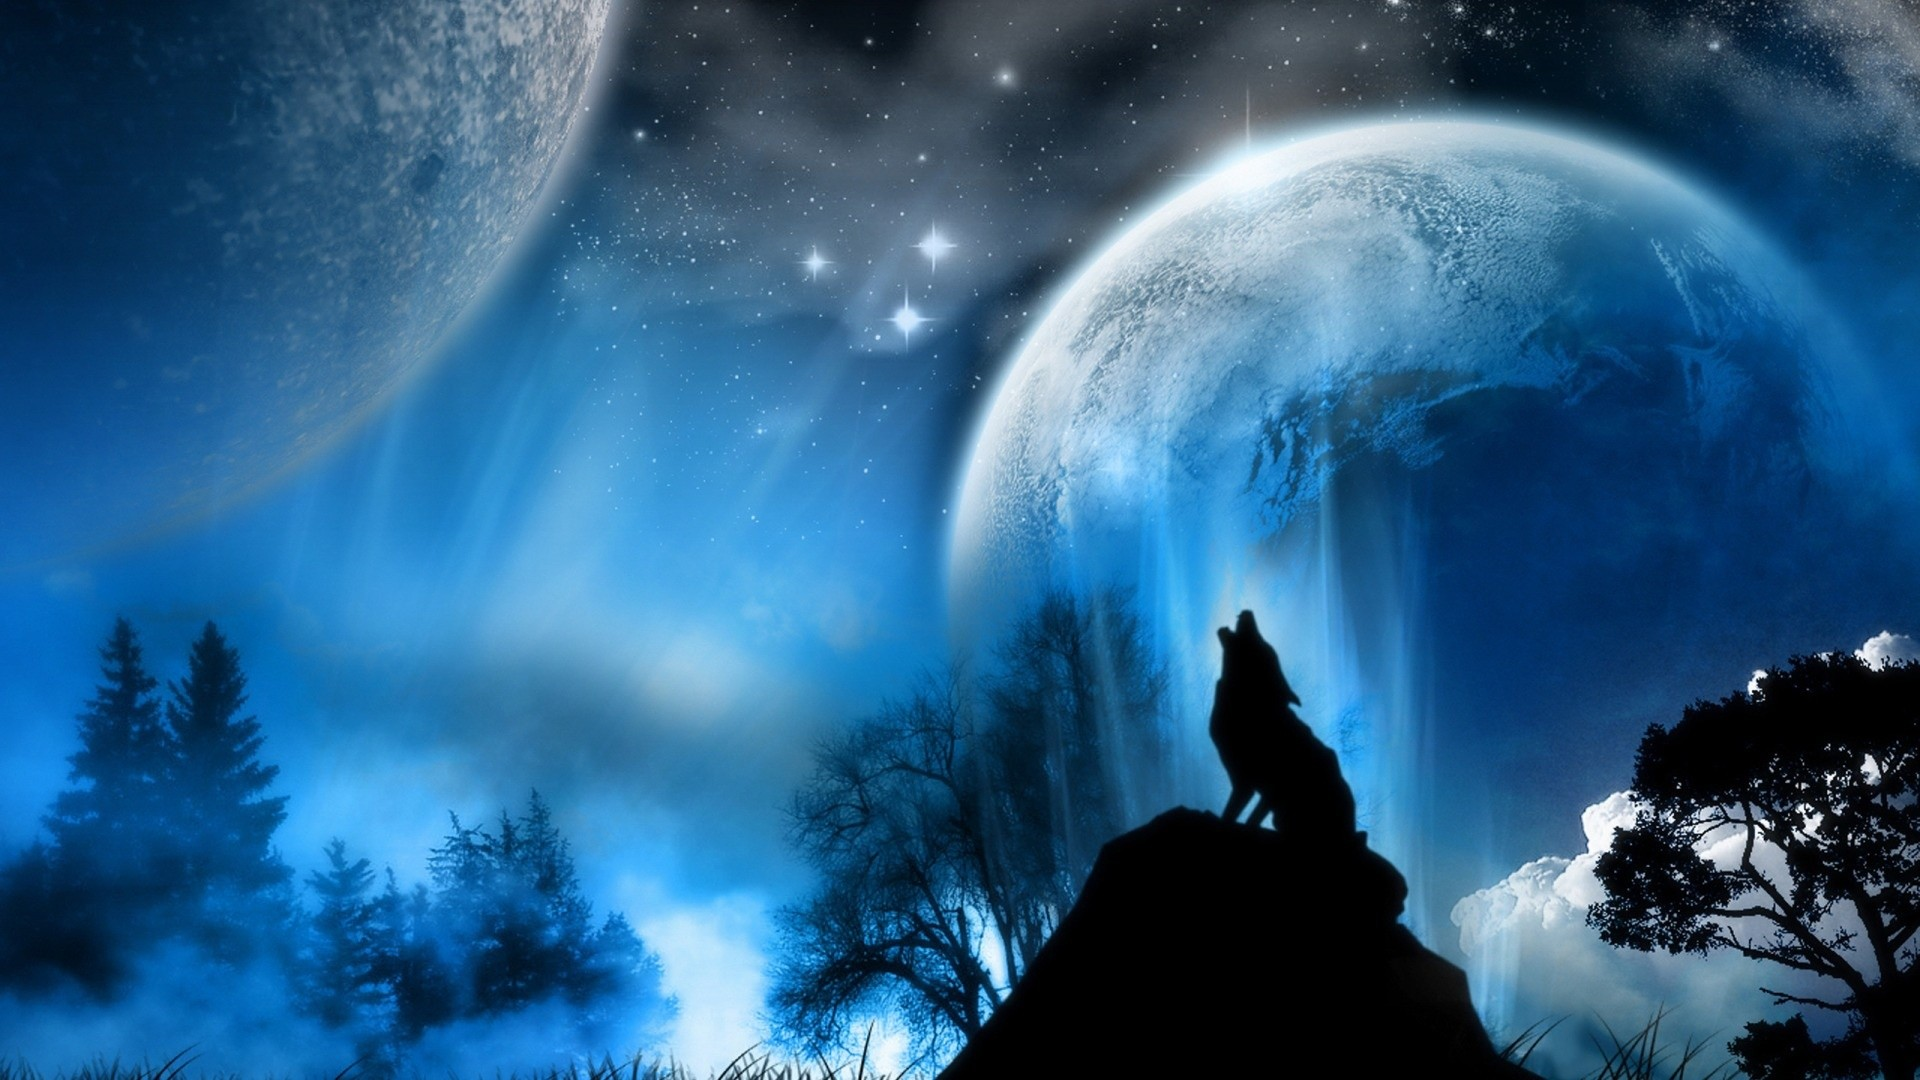 … wolf backgrounds 80 wallpapers hd wallpapers …